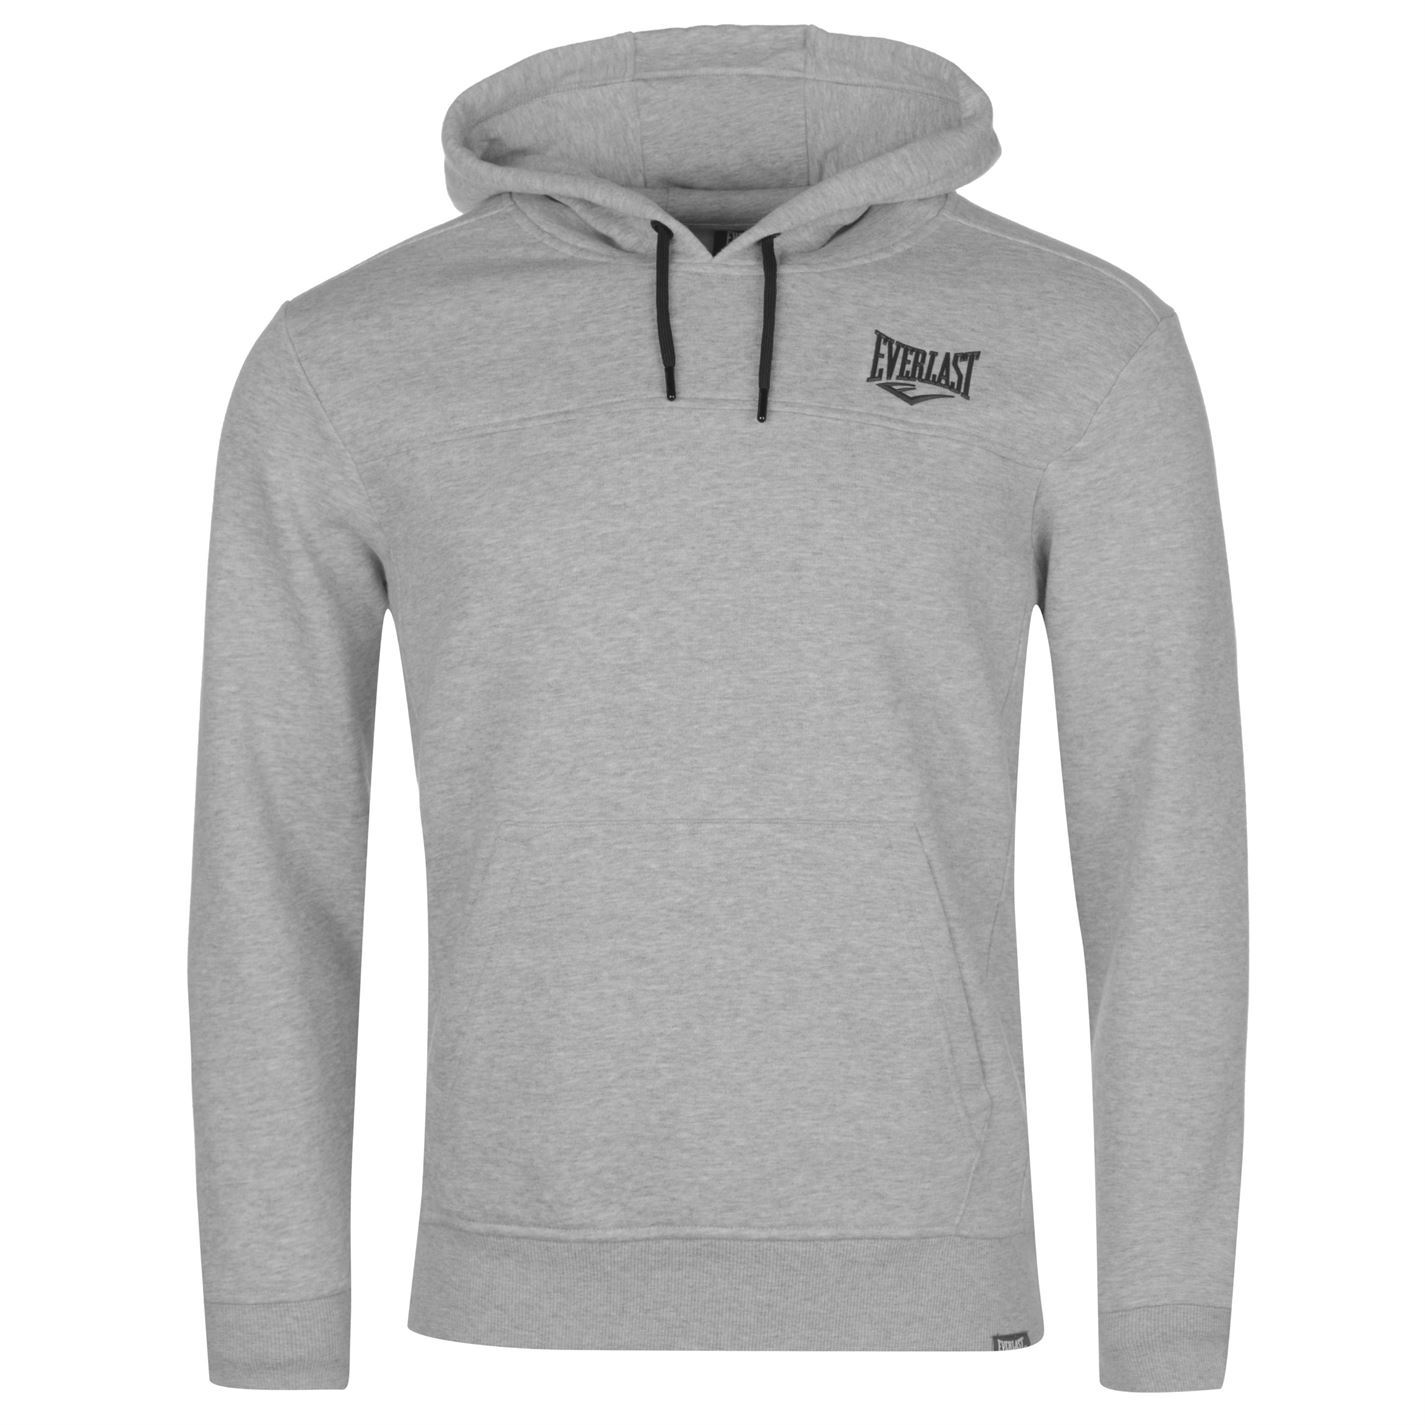 Everlast-Logo-Pullover-Hoody-Mens-OTH-Hoodie-Hooded-Top-Sweatshirt-Sweater thumbnail 17